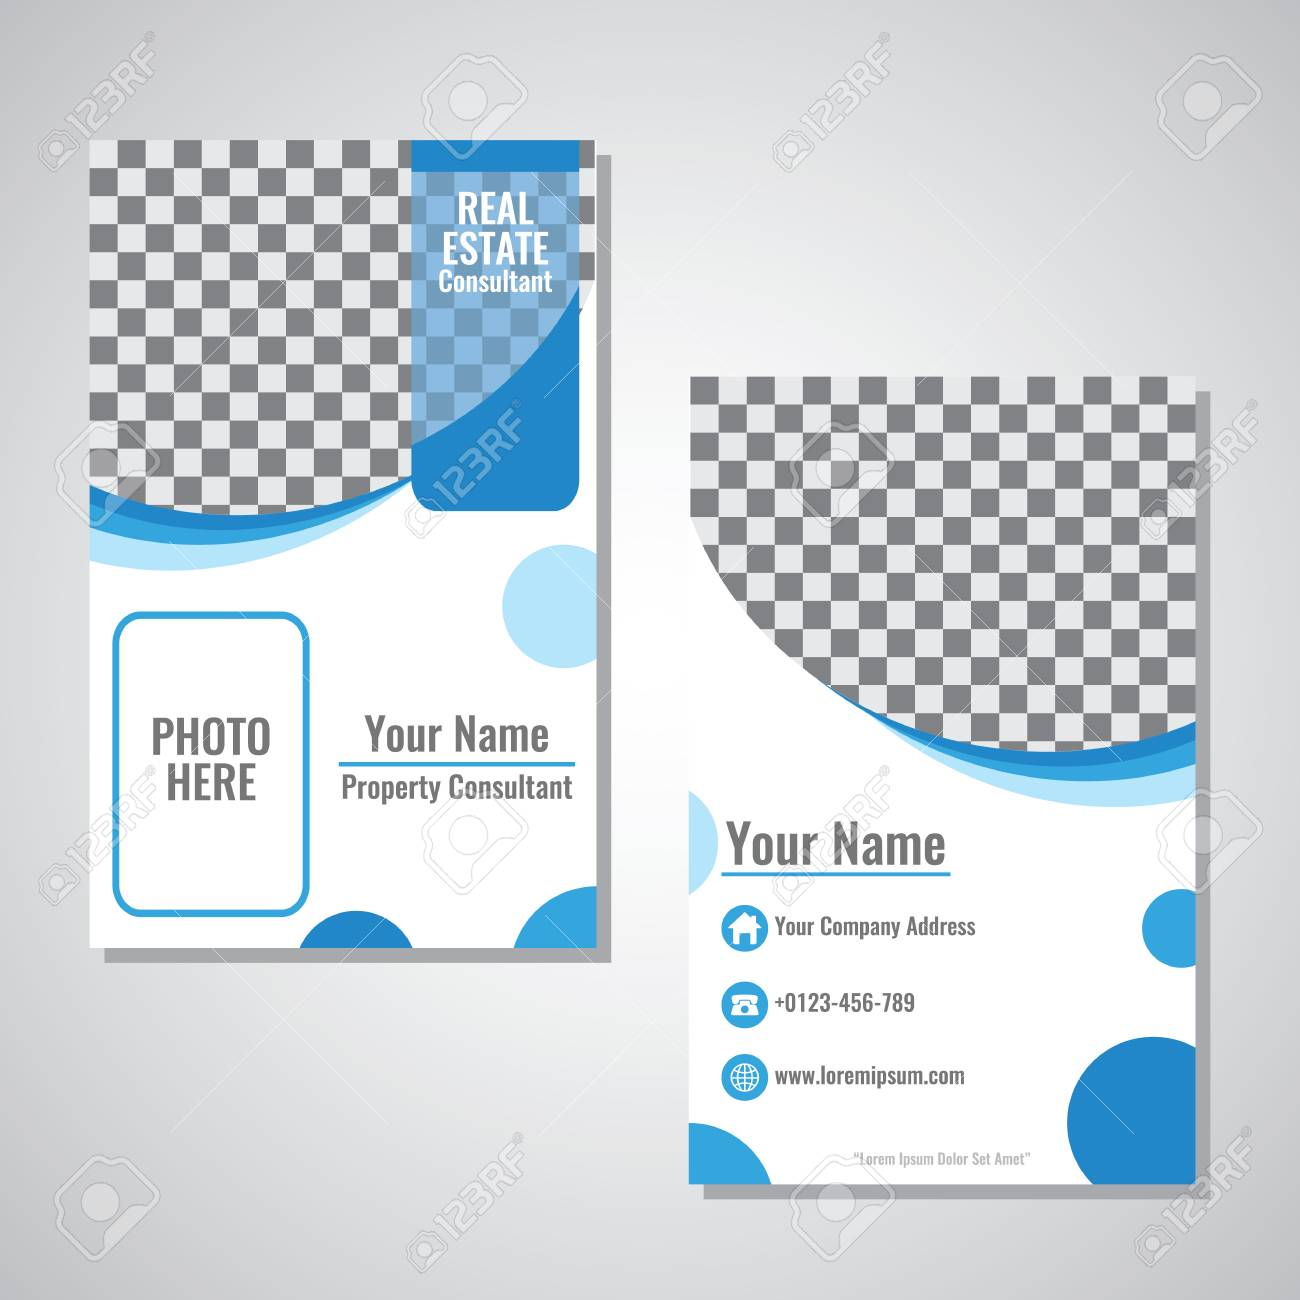 Business Vertical Identity Card Template Vector Design With Blue Royalty Free Cliparts Vectors And Stock Illustration Image 97937705